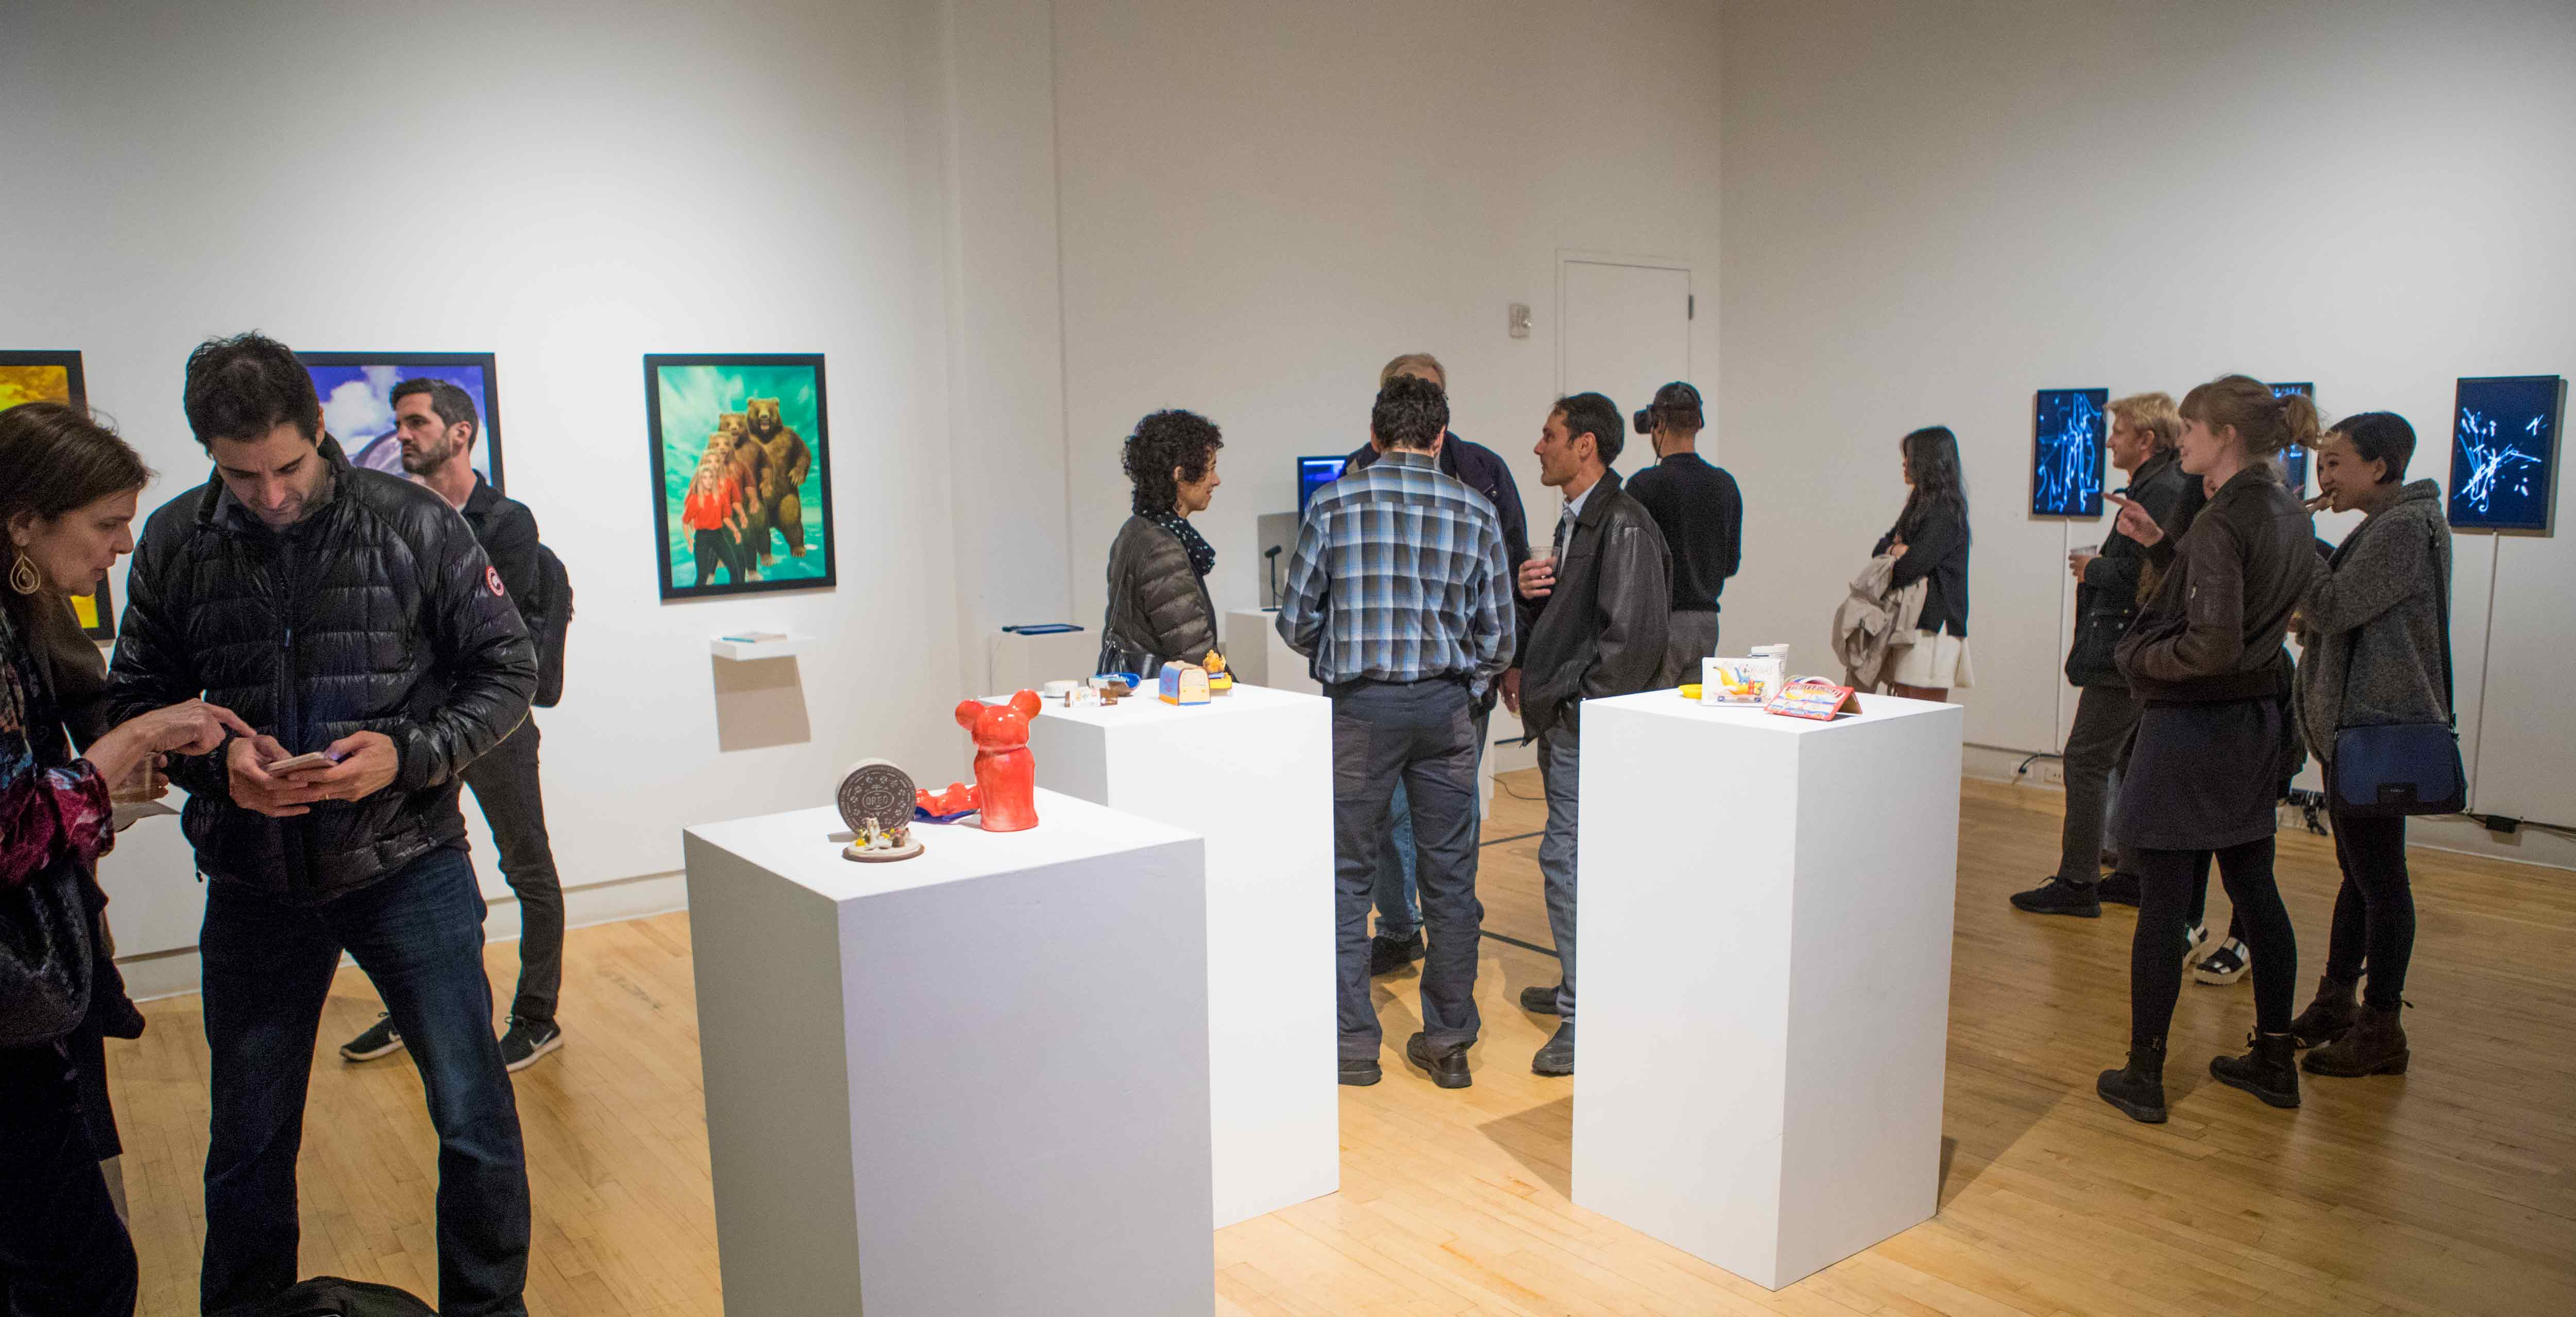 A group of people visiting with each other in an art gallery.